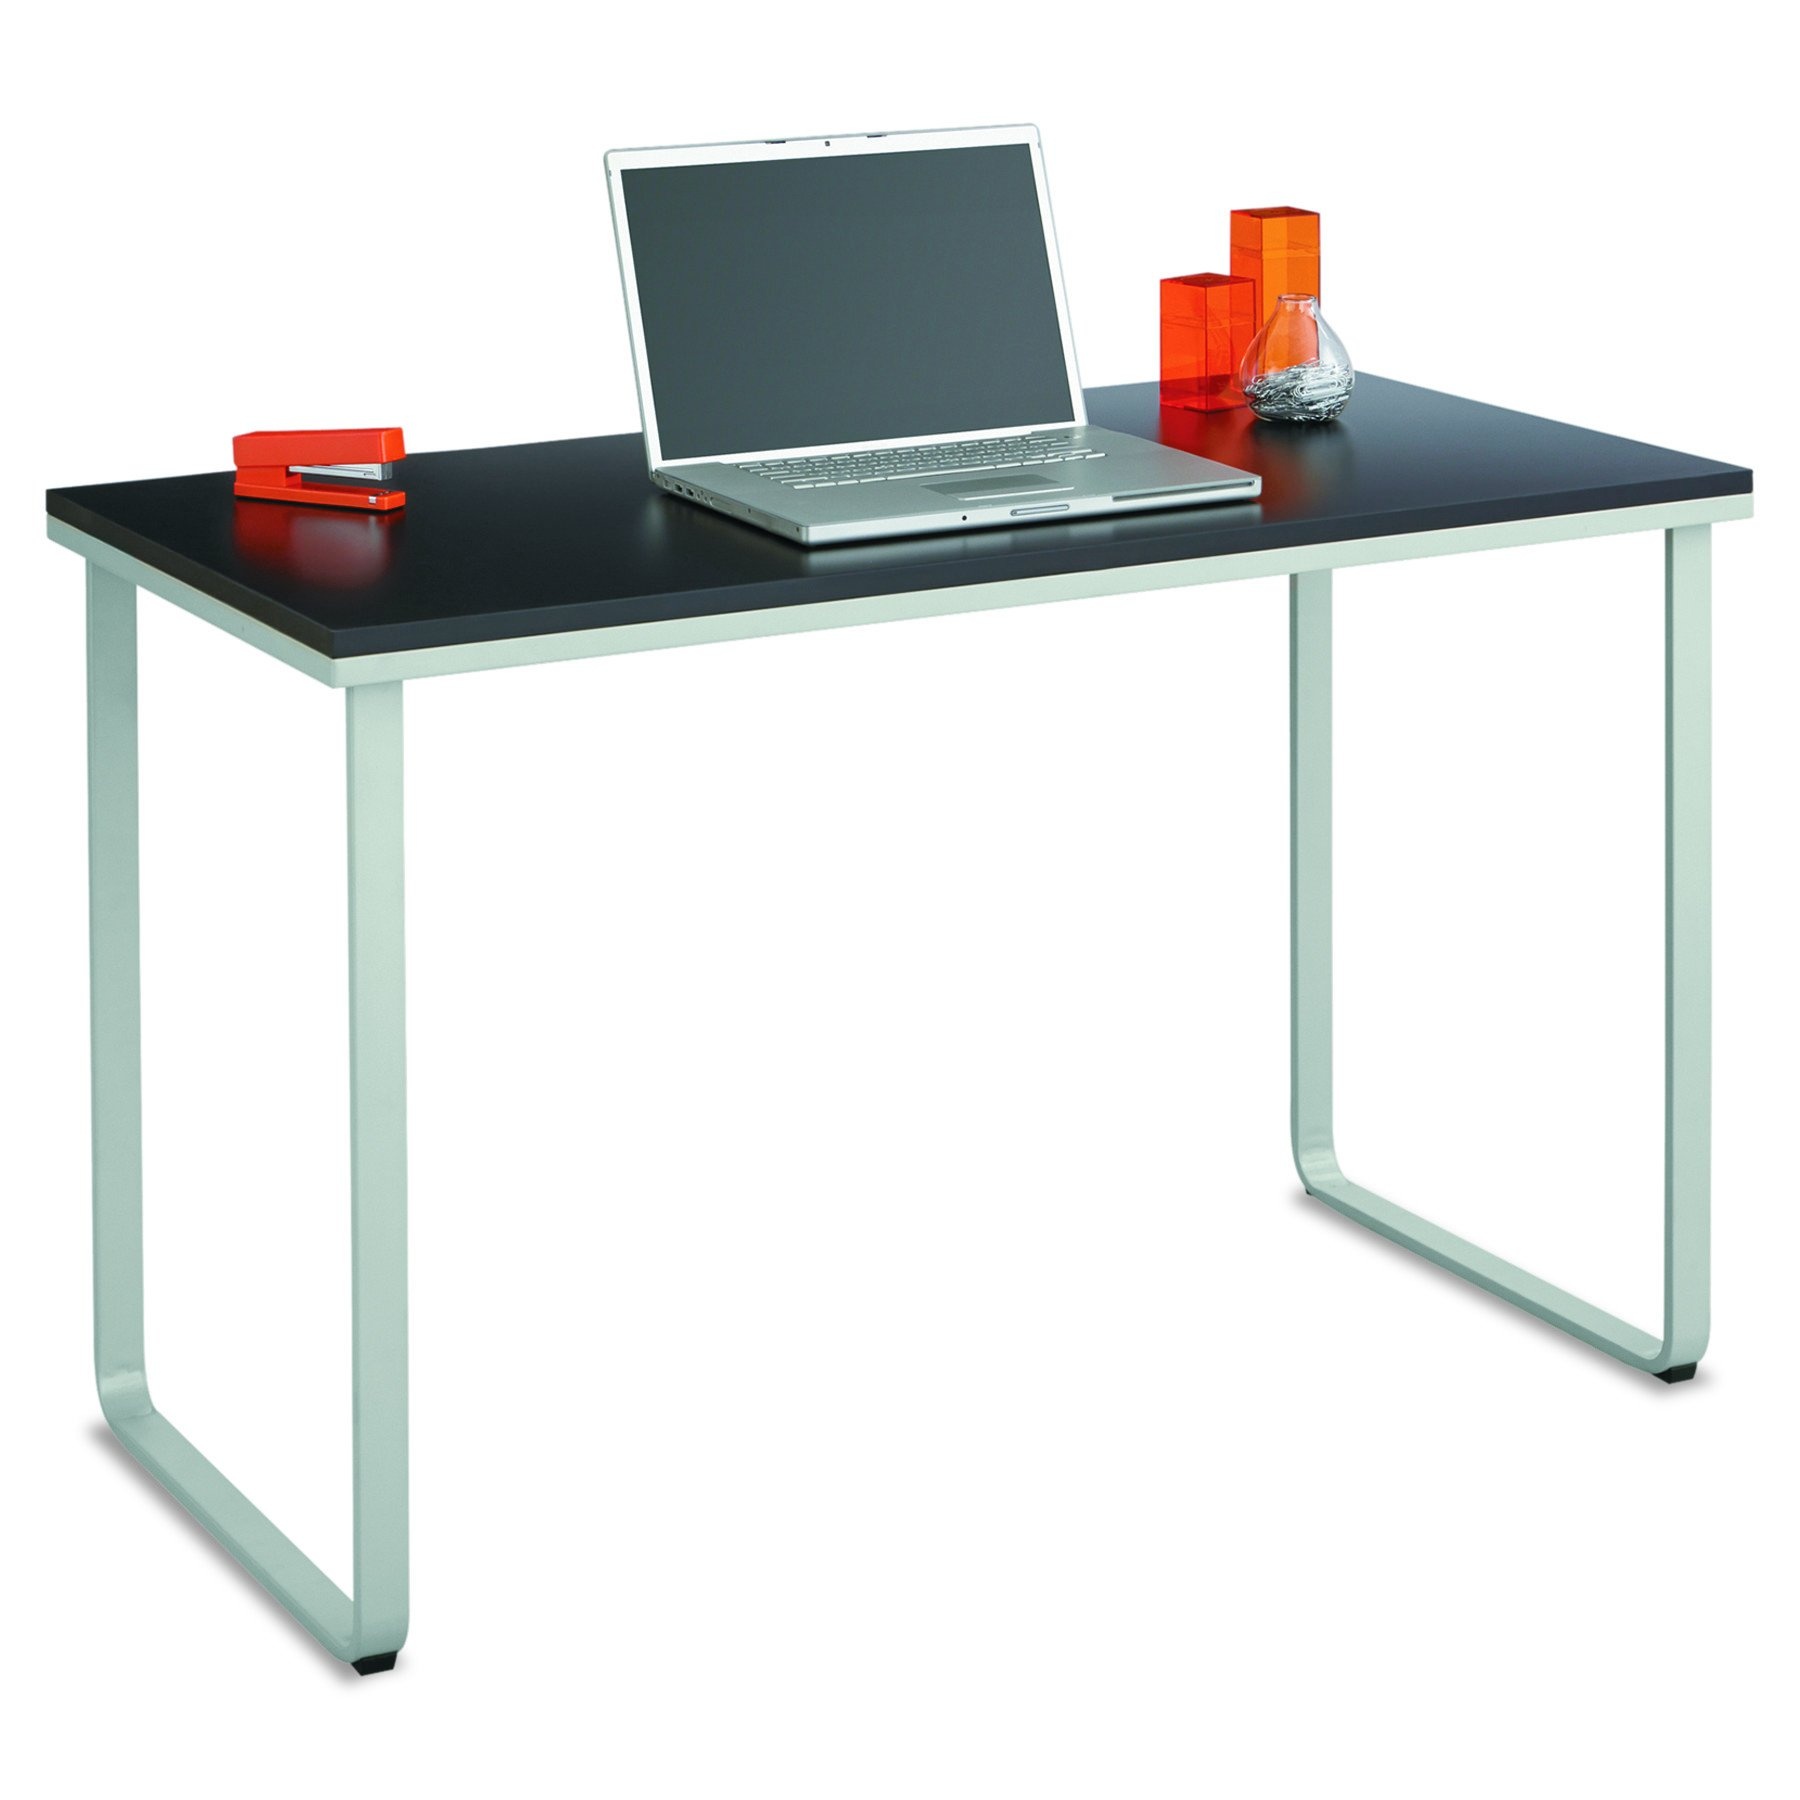 Safco Products 1943BLSL Simple Design Table Desk with Sled Base, Black/Silver